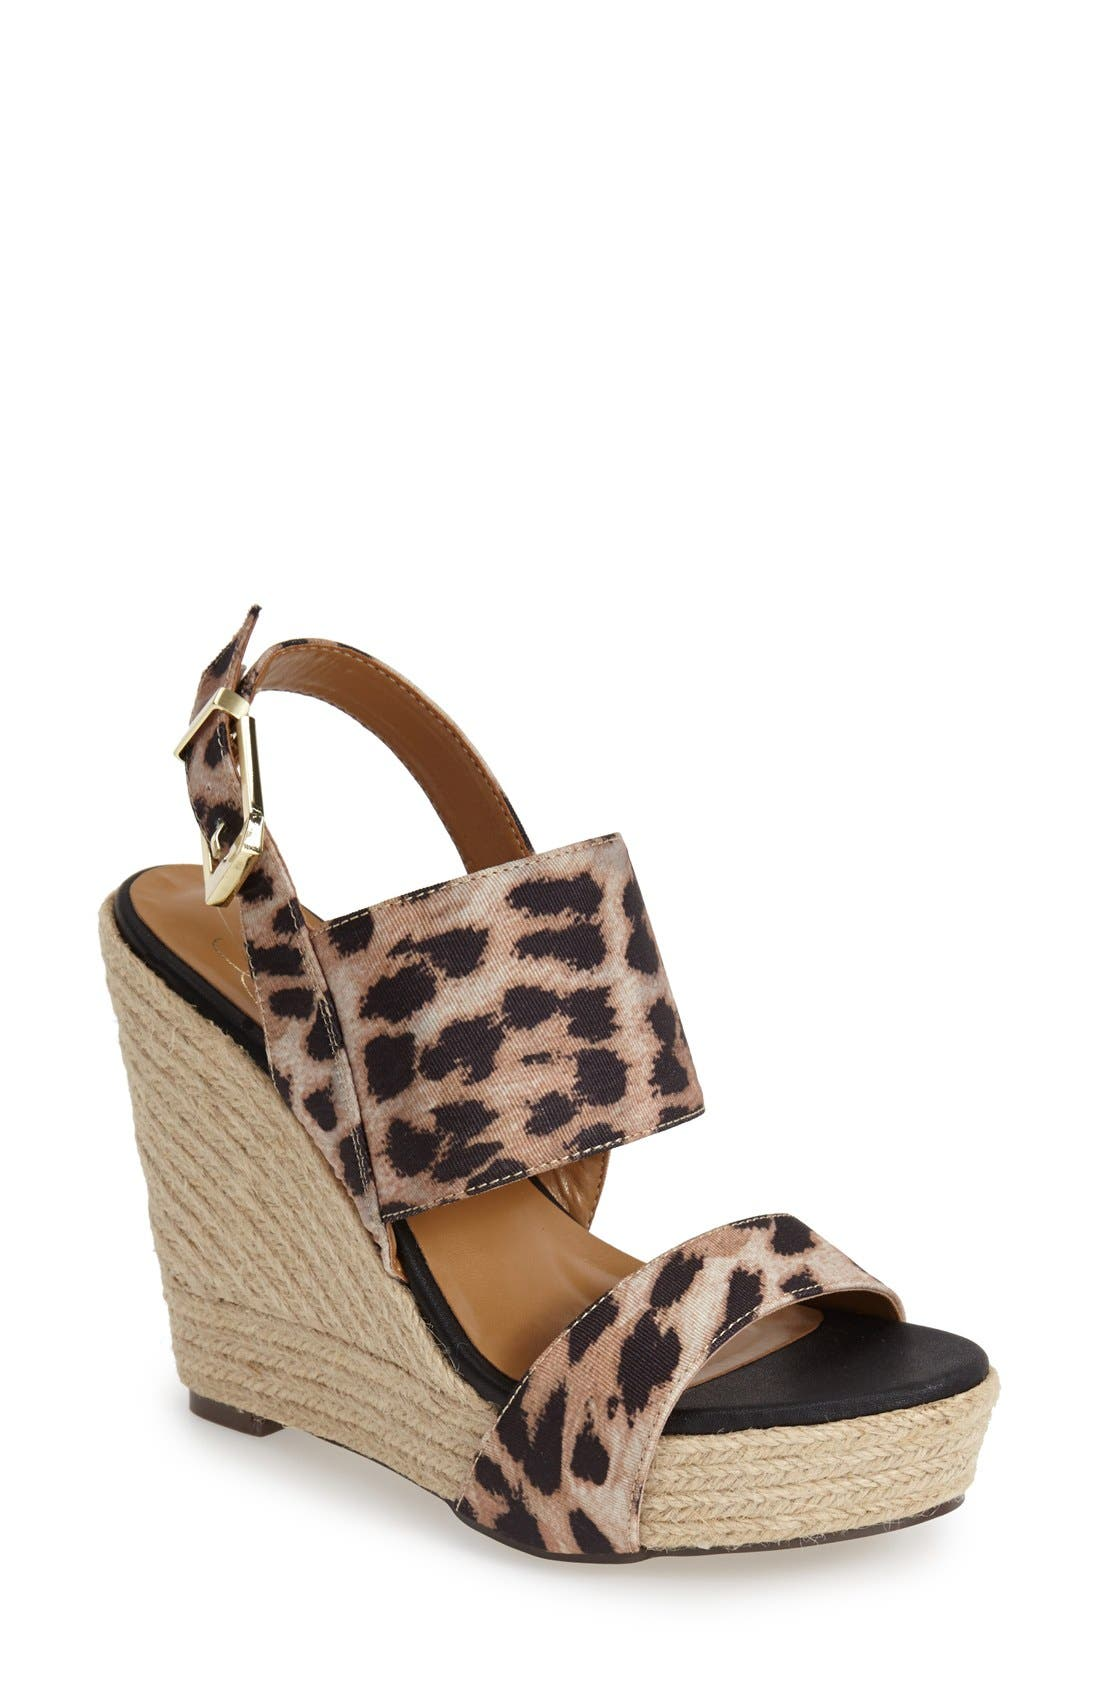 Main Image - REPORT Signature 'Cass' Wedge Sandal (Women)